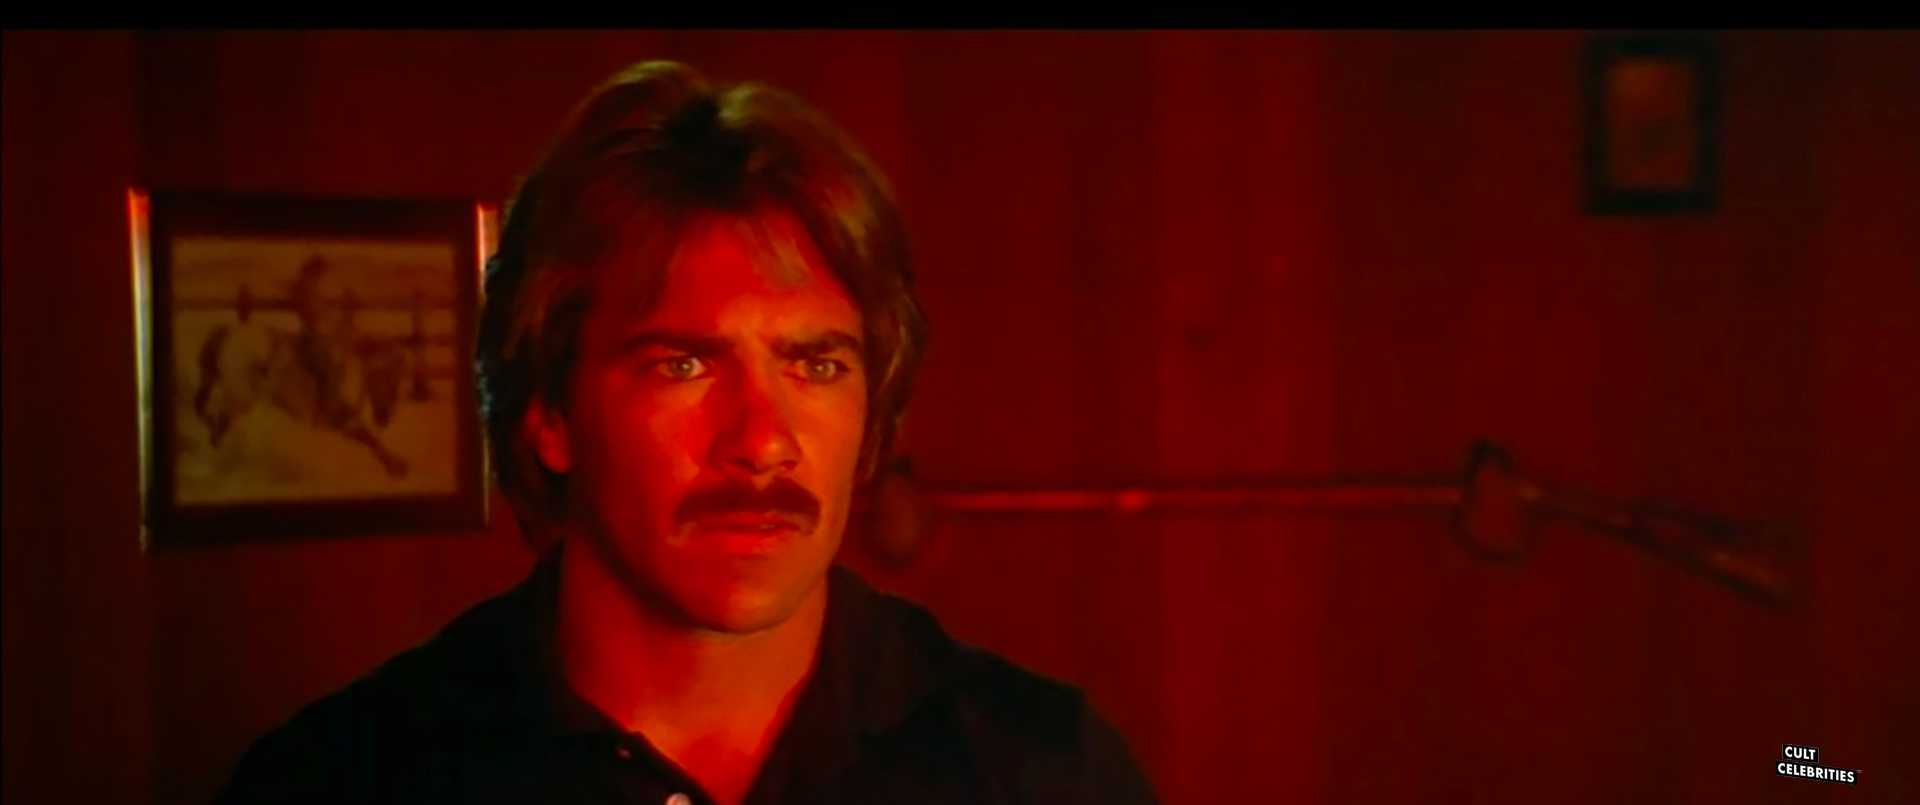 Paul Coufos in The Lost Empire (1984)